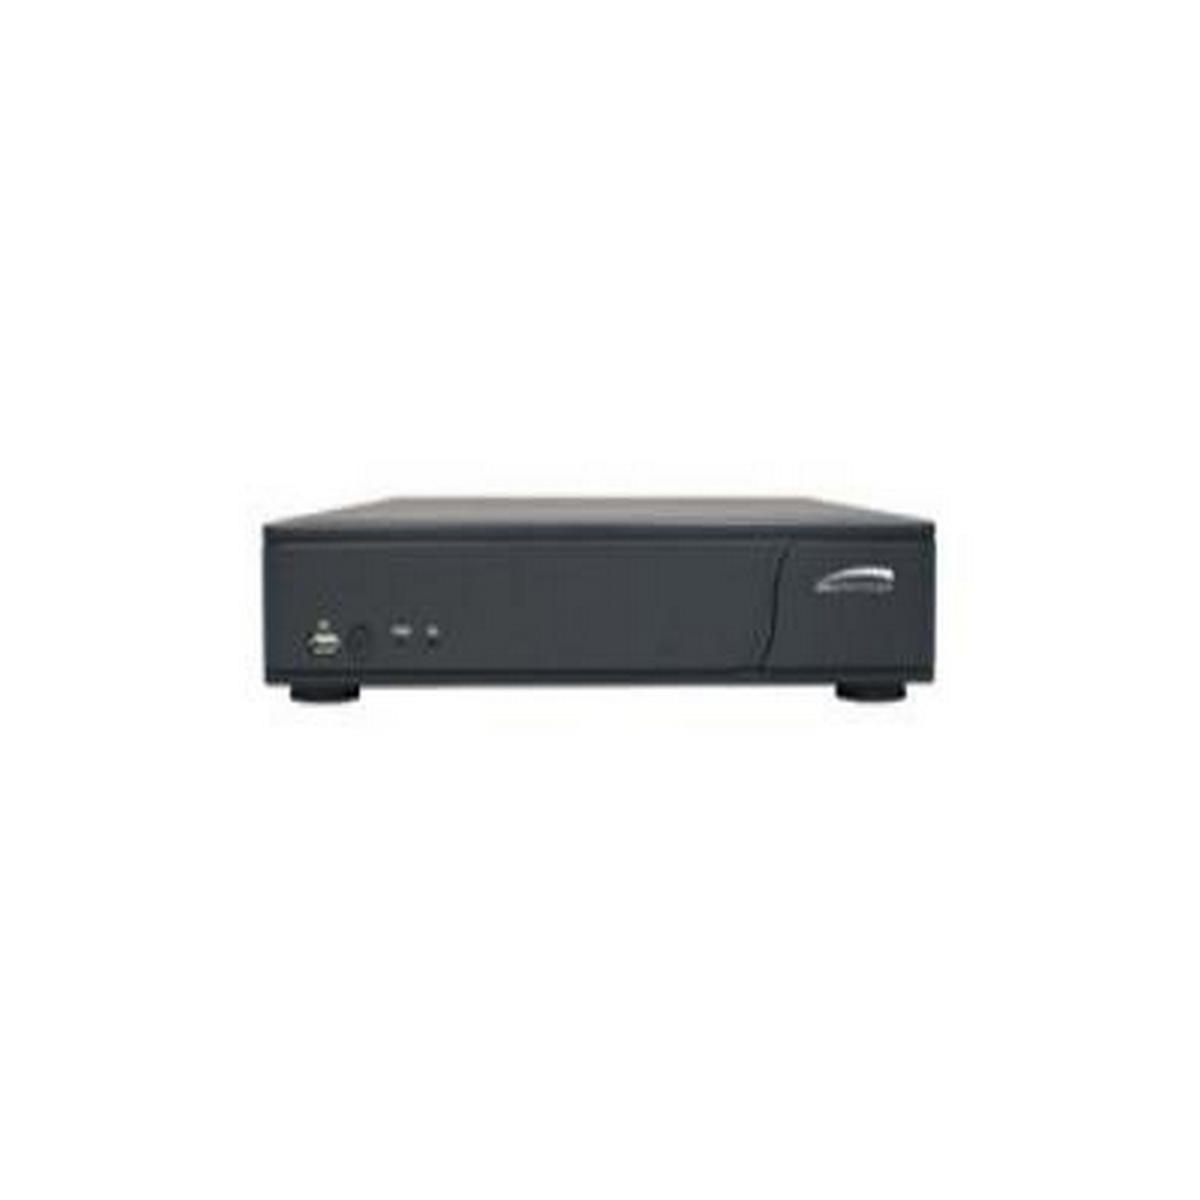 Speco D8RS250 8 Channel H.264 DVR, 250GB HDD